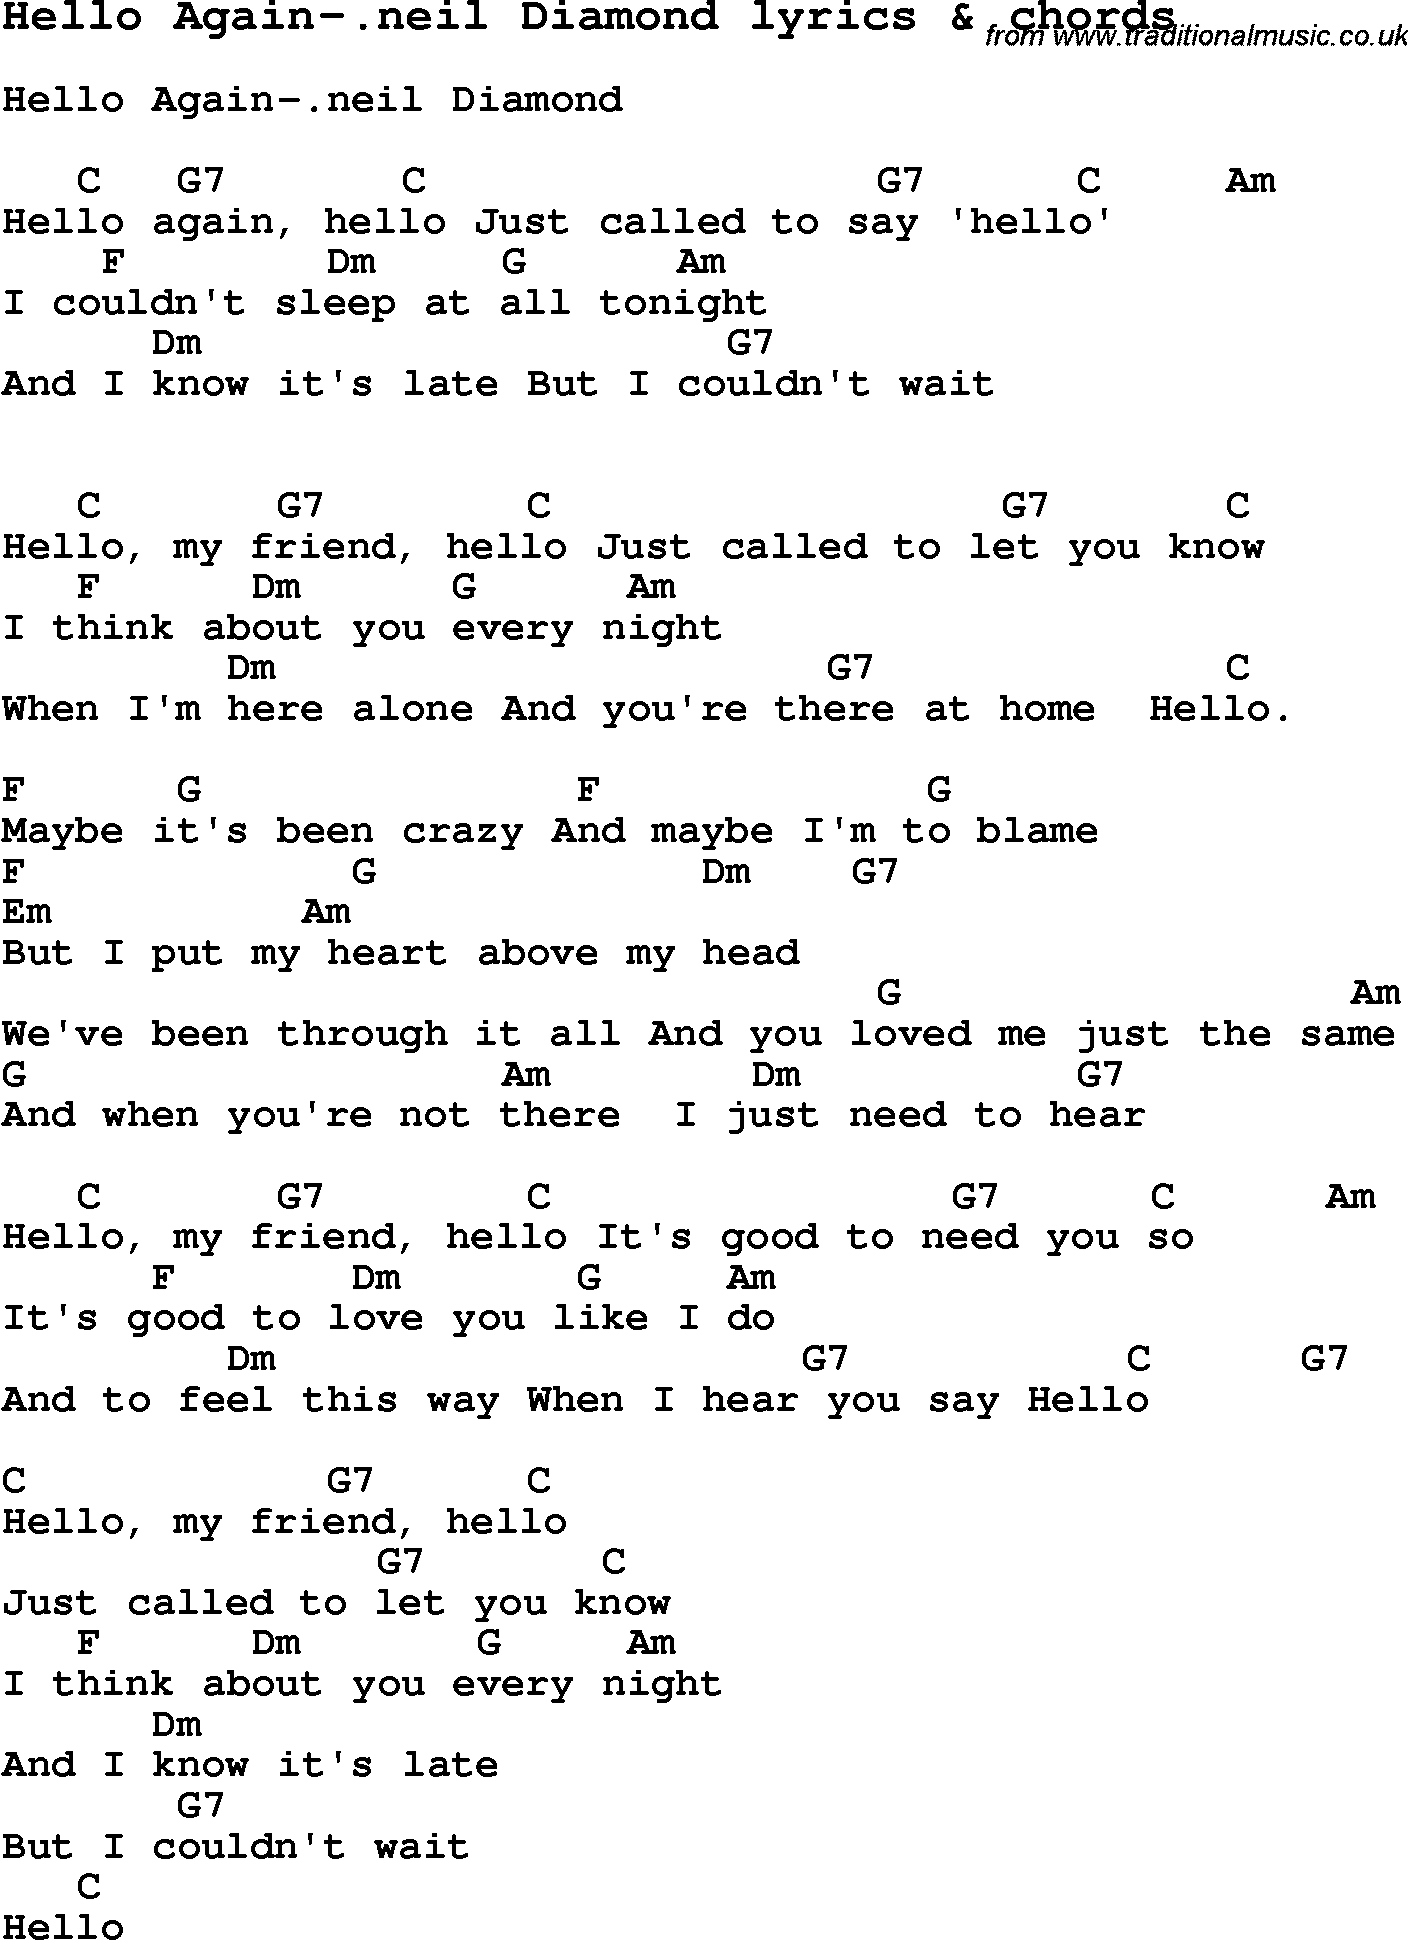 Hello Ukulele Chords Love Song Lyrics Forhello Again Neil Diamond With Chords